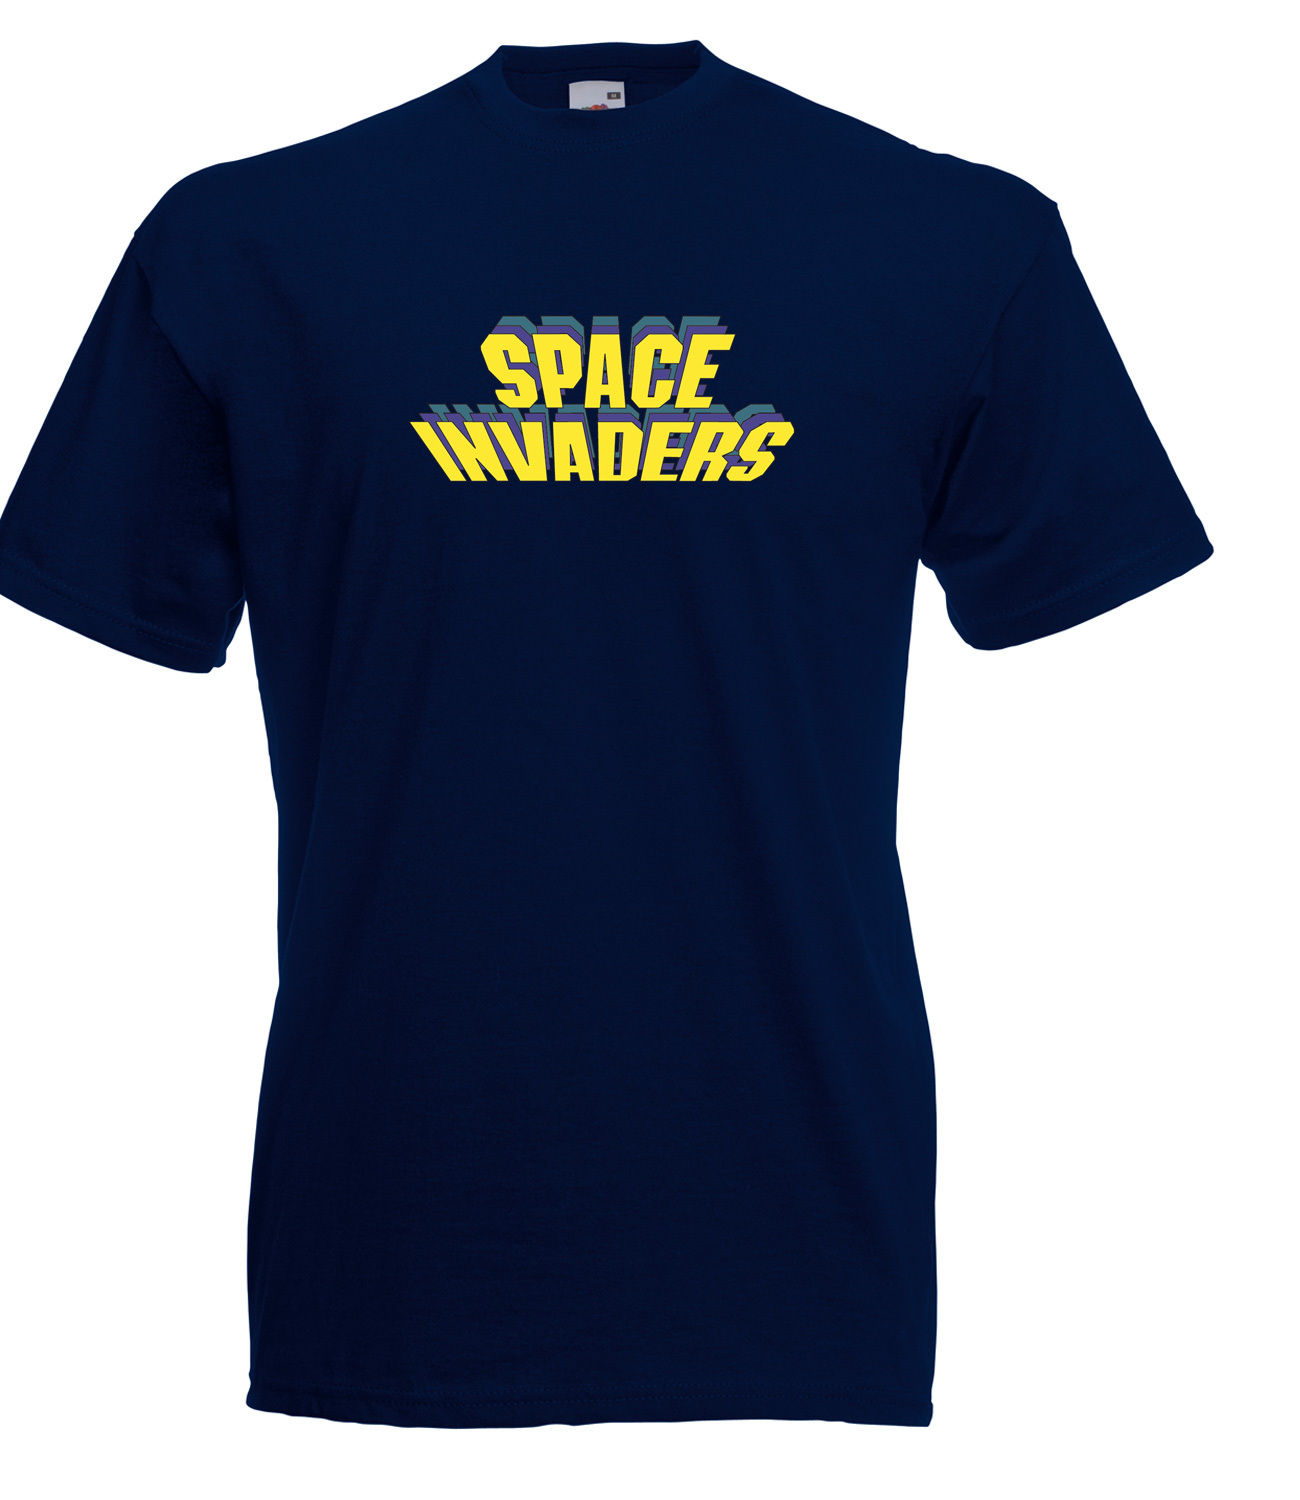 SPACE-INVADERS-INSPIRED-STYLE-LOGO-GRAPHIC-HIGH-QUALITY-100-COTTON-T-SHIRT